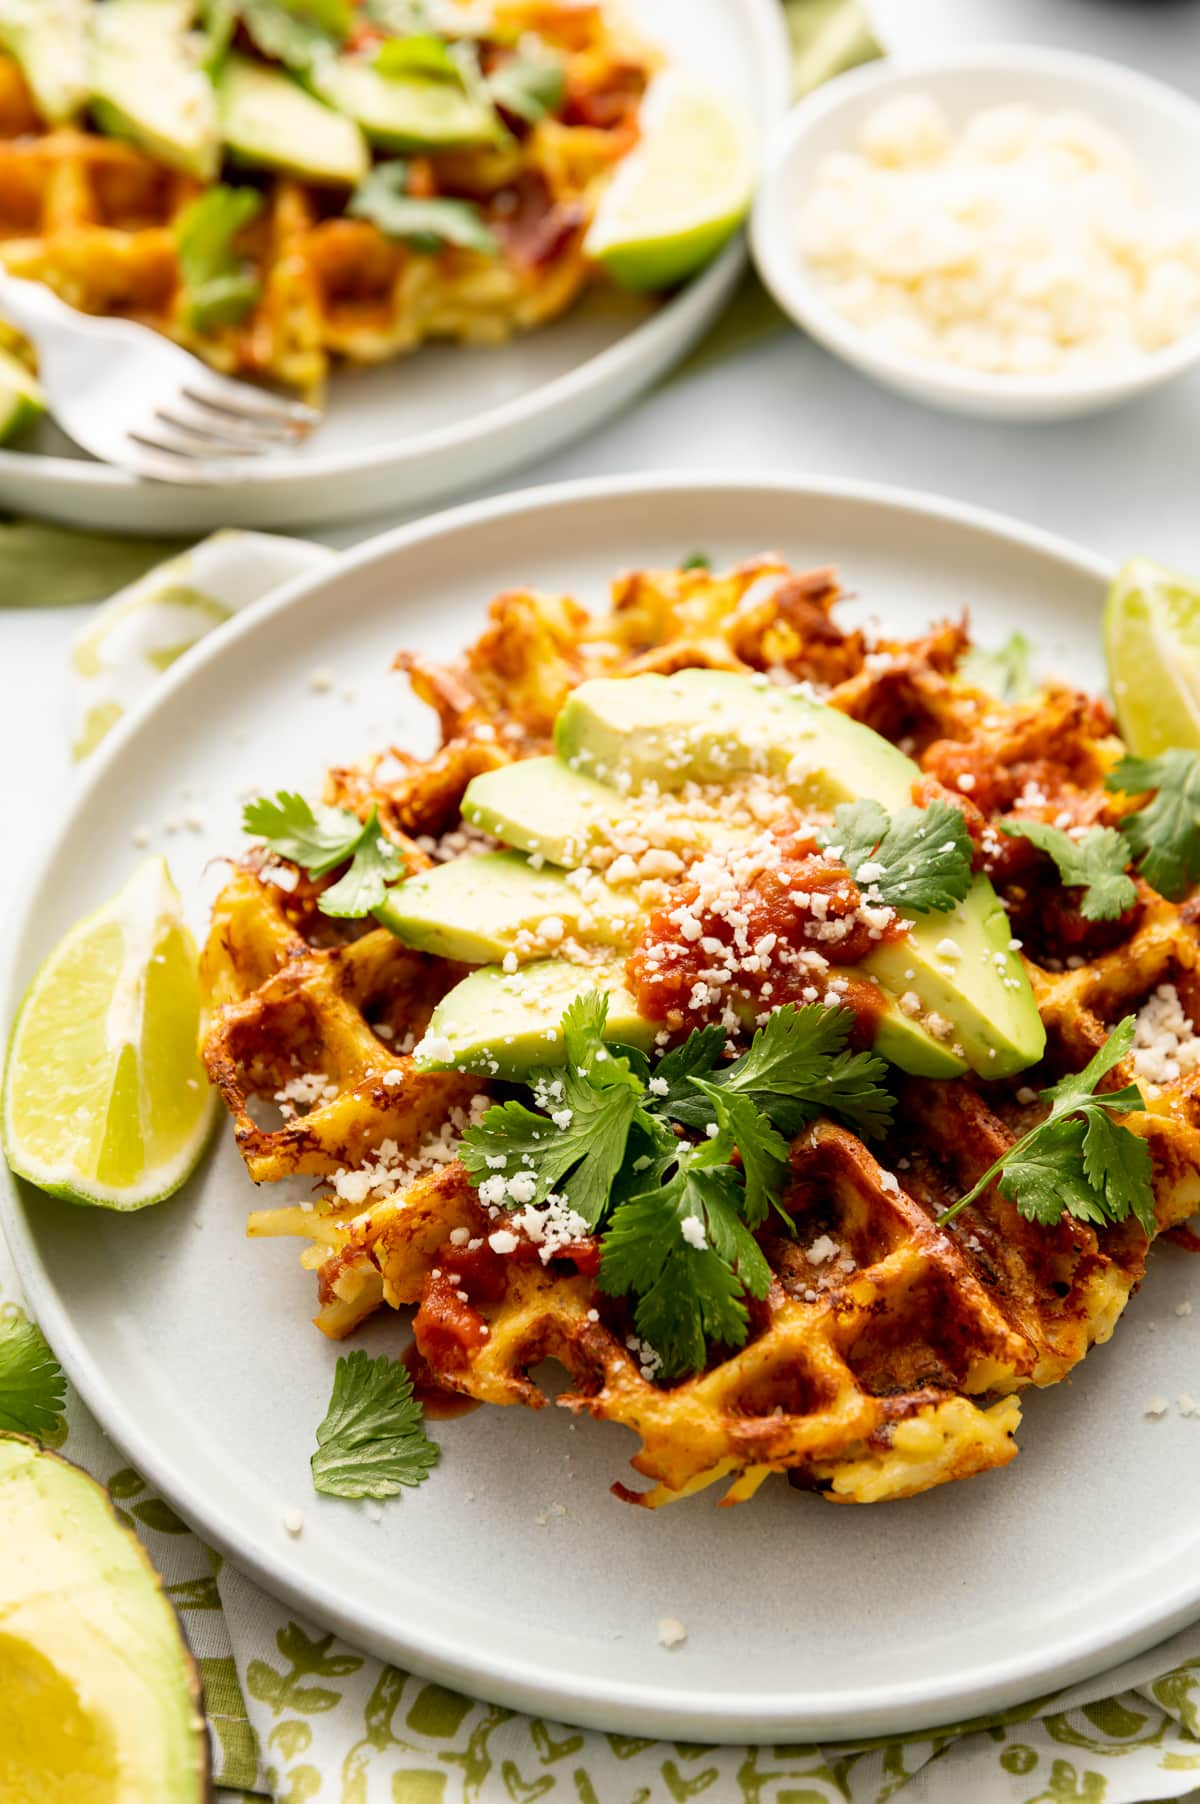 hash brown waffles on white plate with lime slices white crumbled cheese avocado slices cilantro